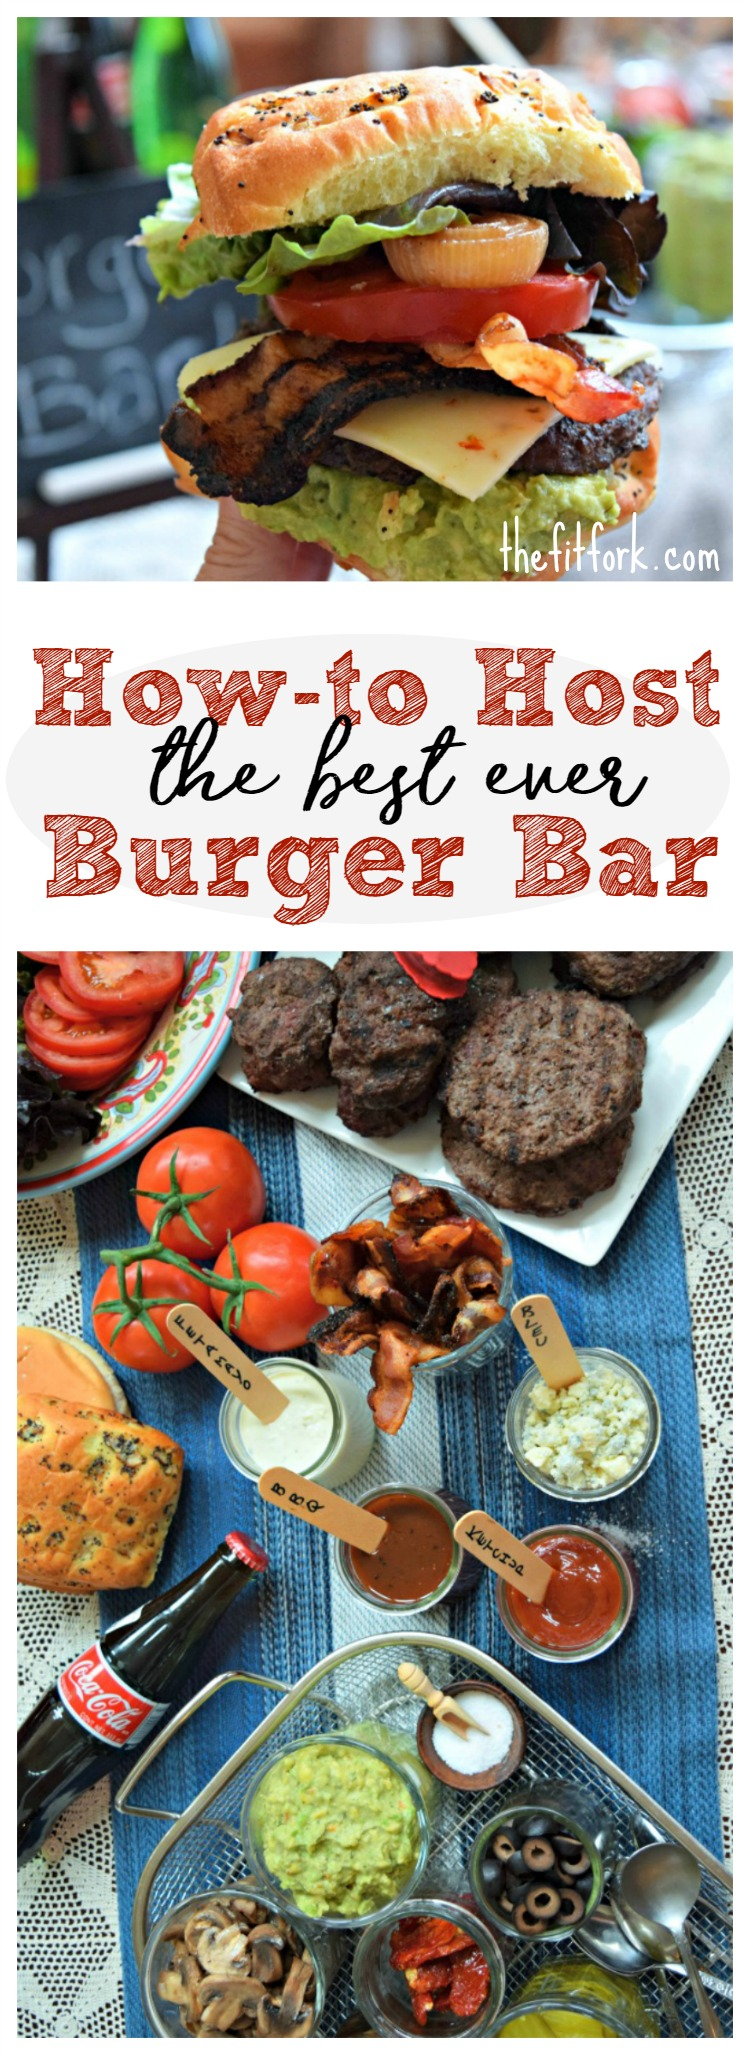 Burger Tips, Hints & Hacks for Summer Grill Outs ...